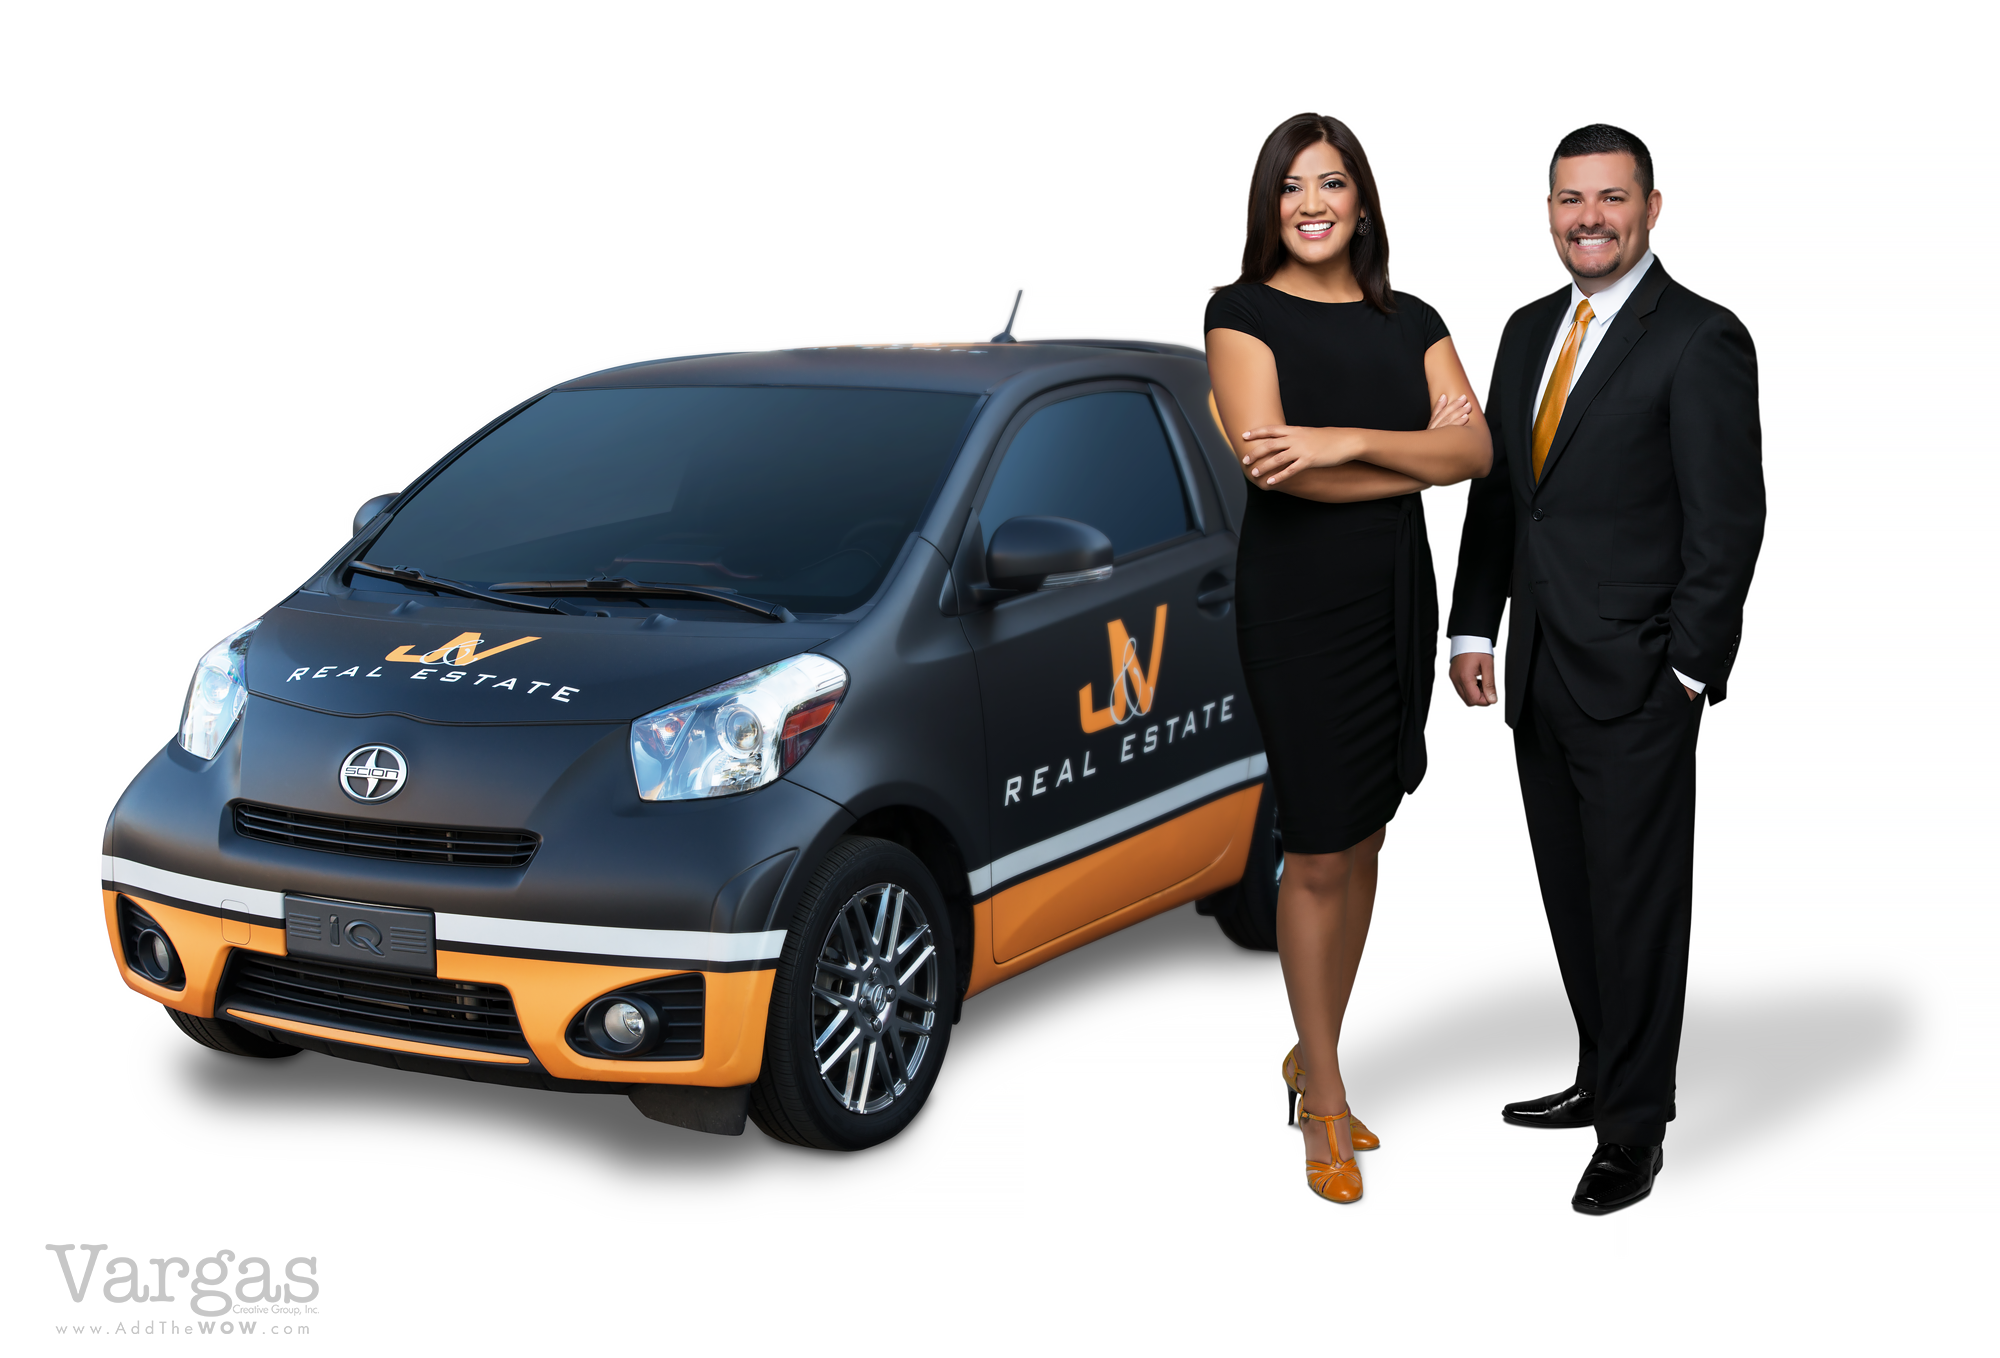 Meza_Vikki-Custom-Photography-Session-for-Real-Estate-Car-Composite-3.png